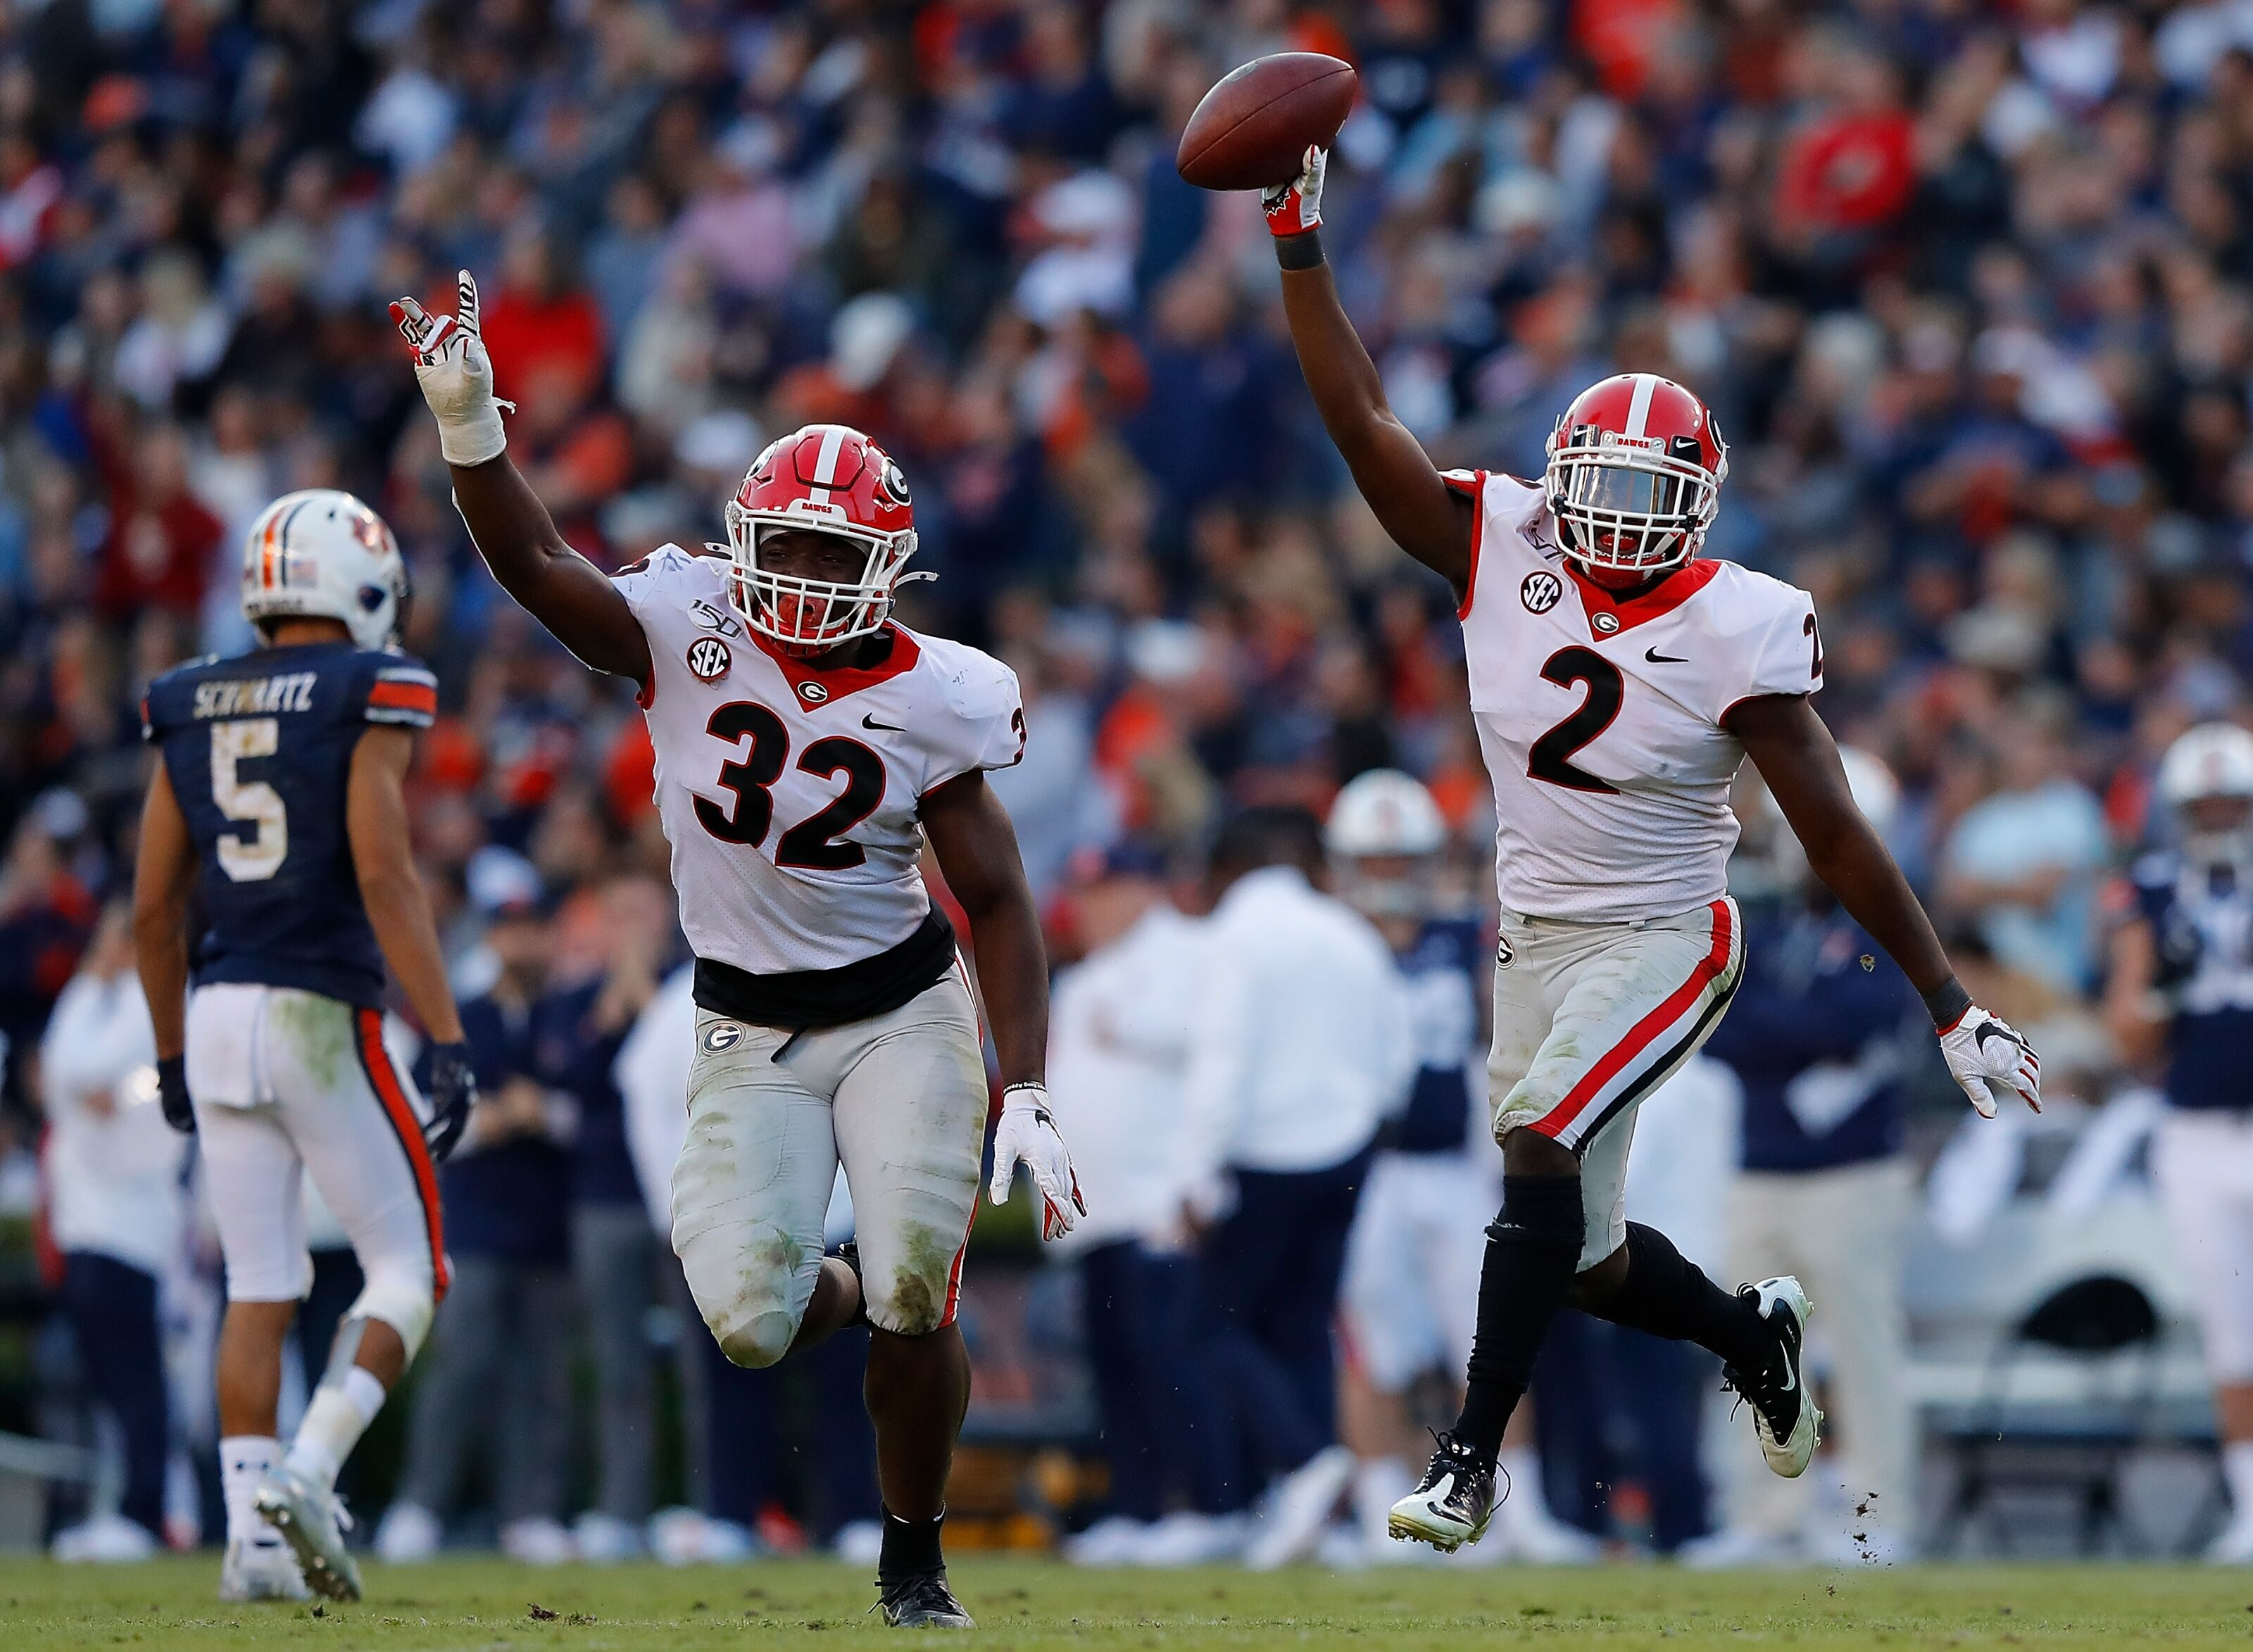 Georgia Football: 3 takeaways from Deep South's Oldest Rivalry at Auburn